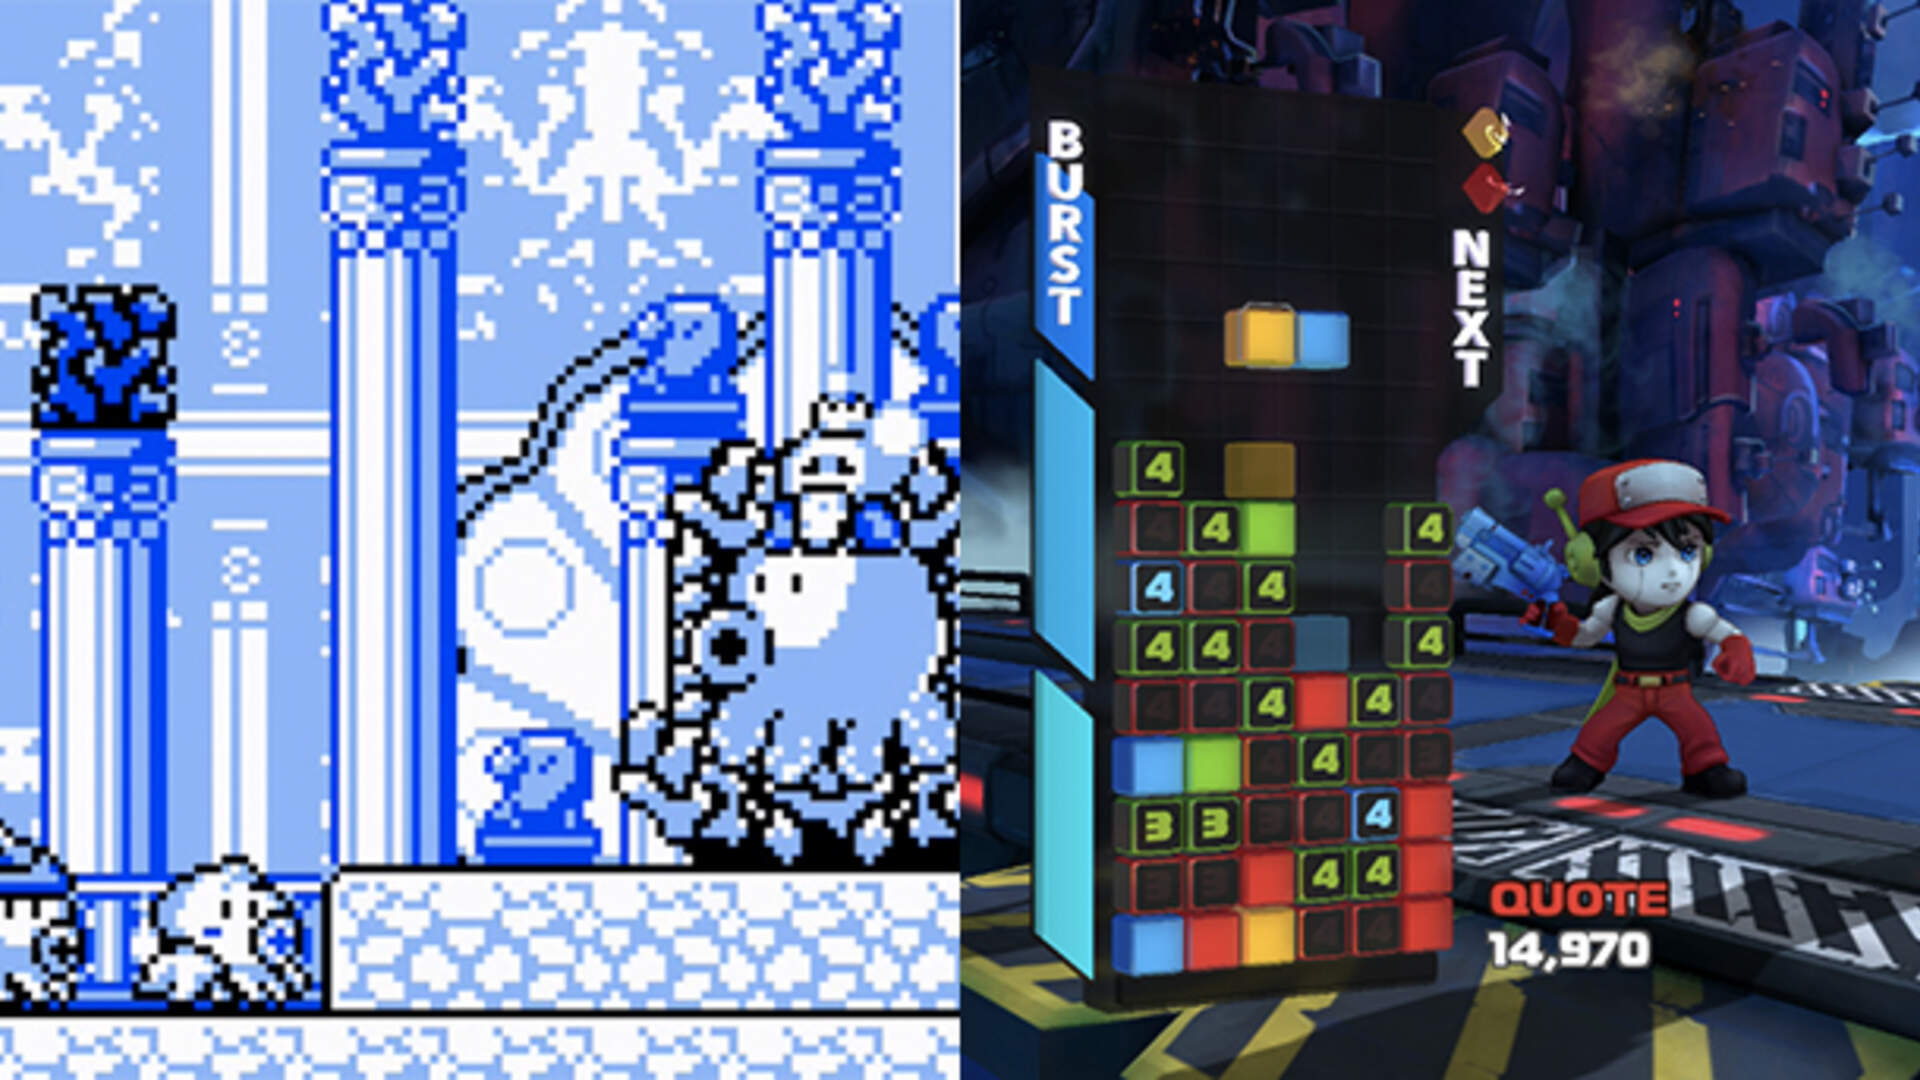 Cave Story Publisher Nicalis Brings an Eclectic Slate of Games to the West